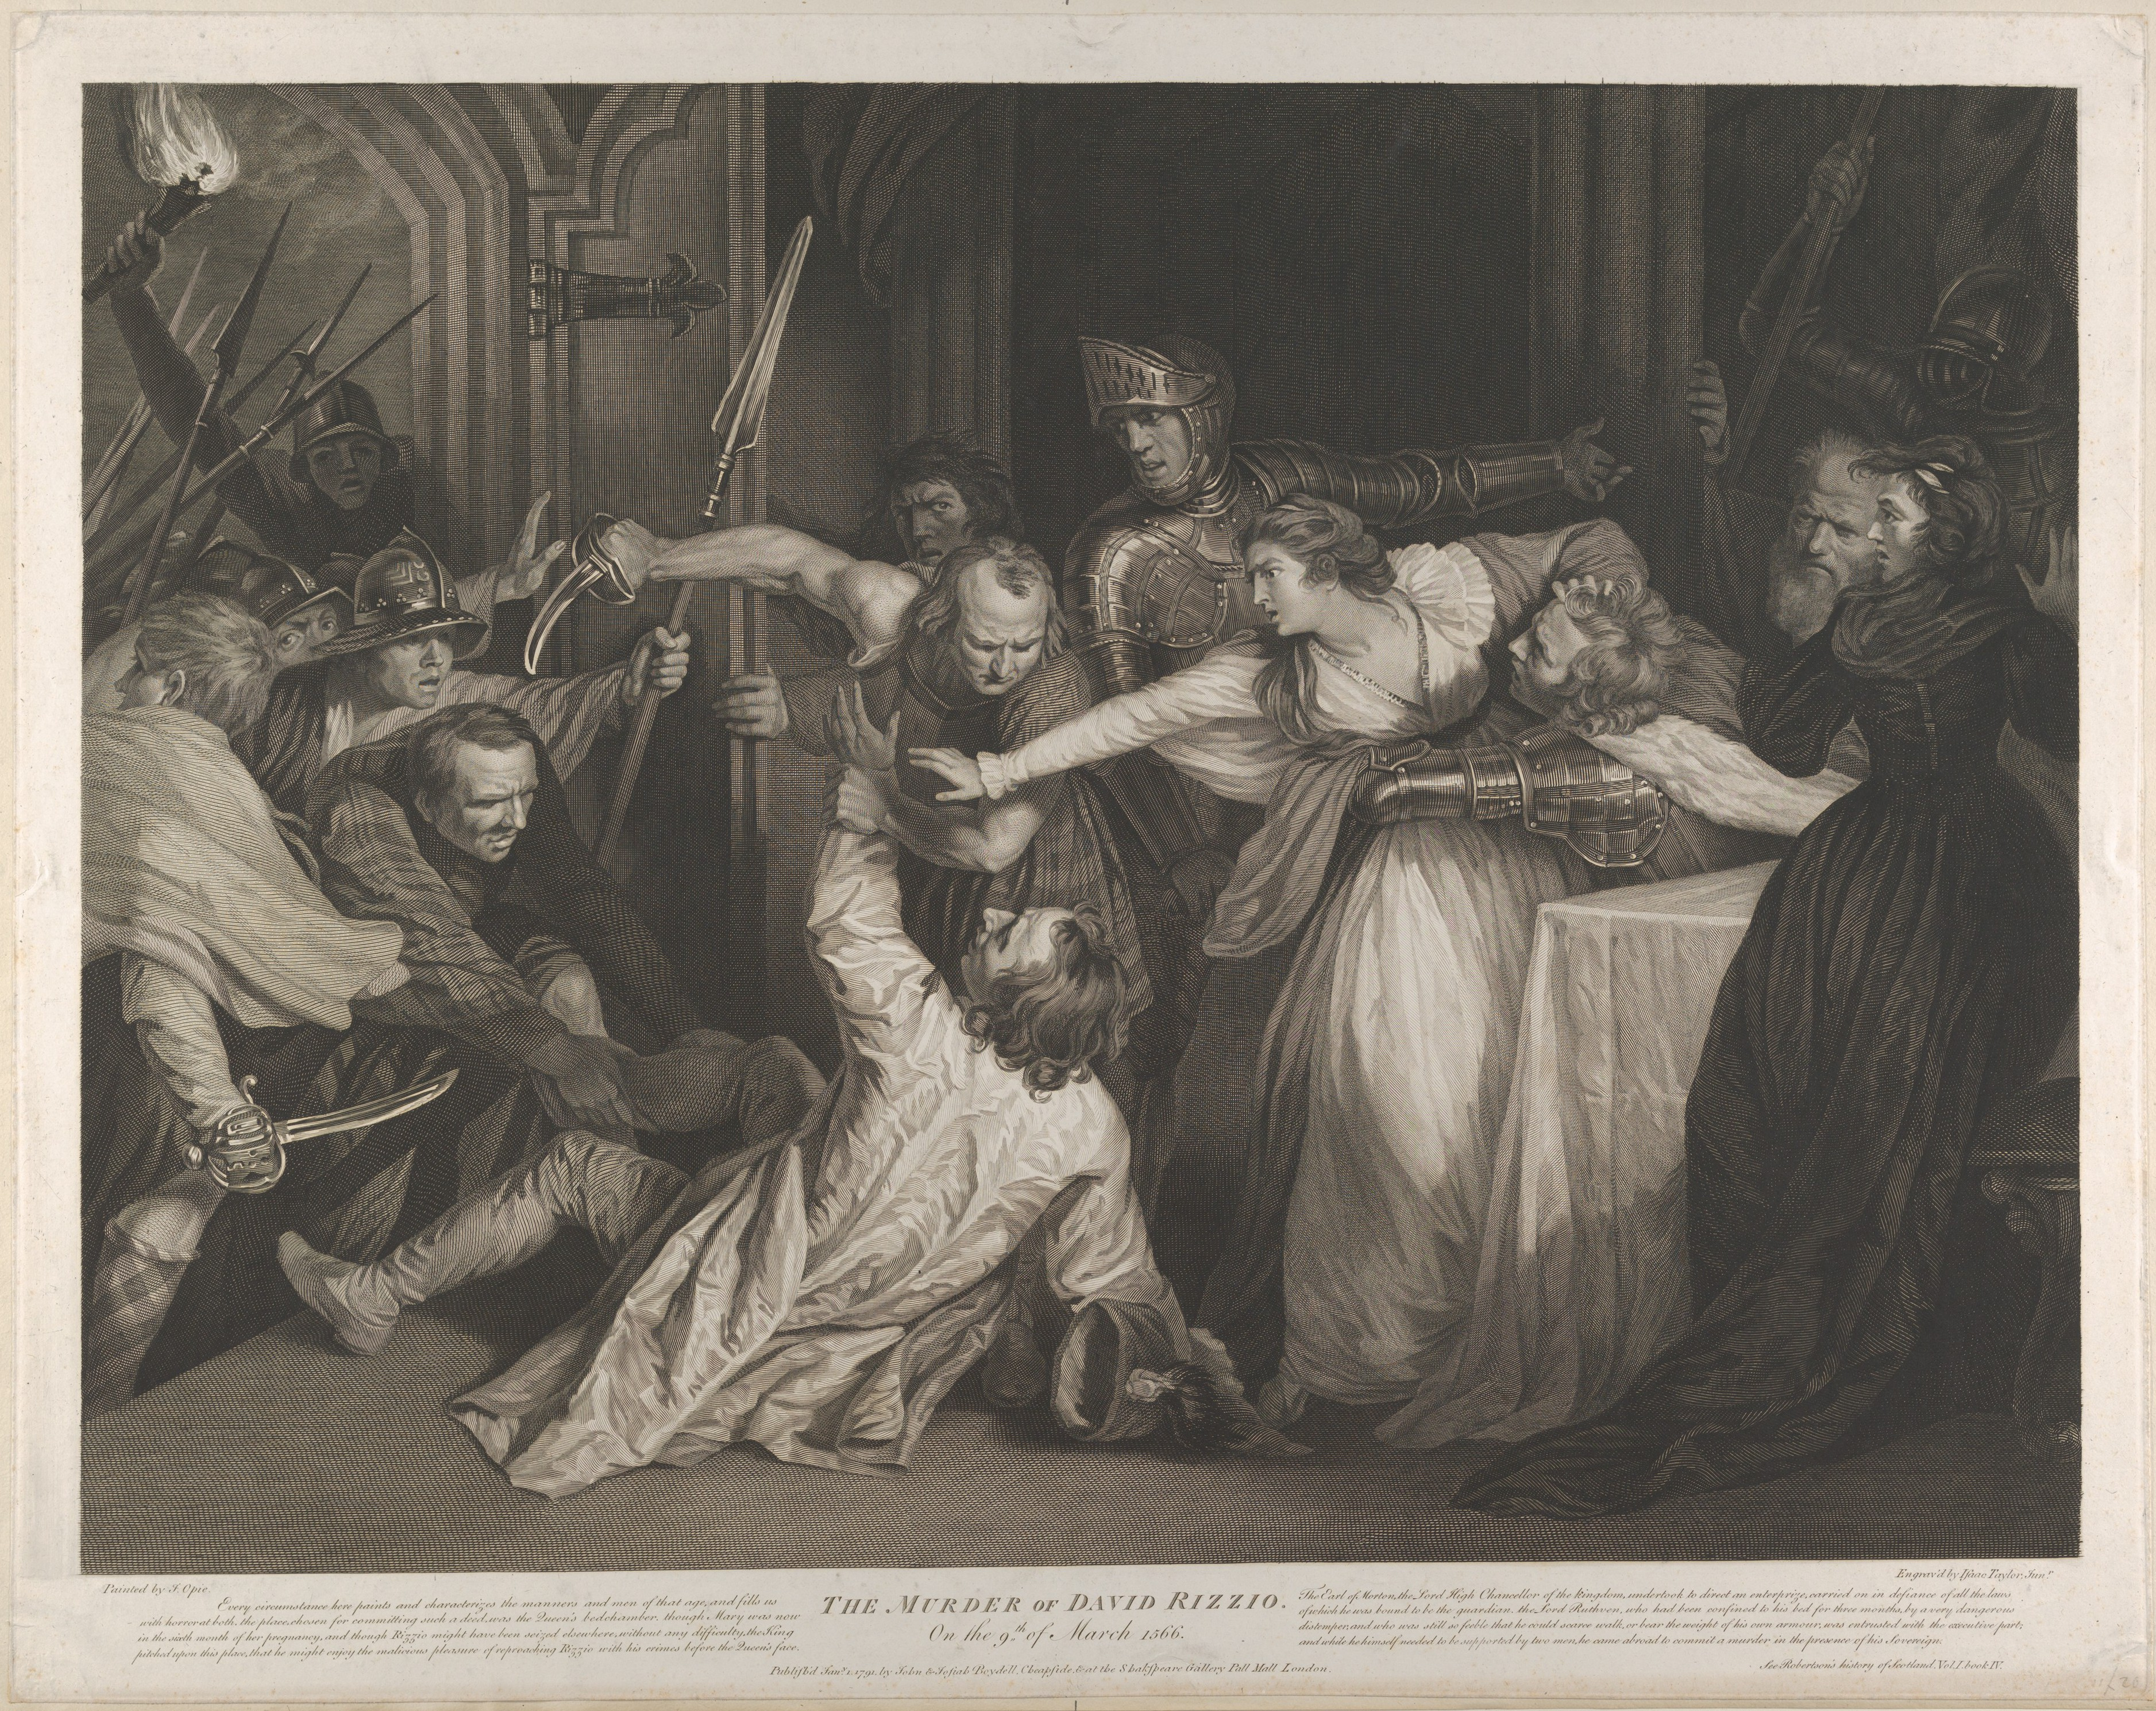 Isaac Taylor Jr Mary Queen Of Scots Witnessing The Murder Of David Rizzio The Metropolitan Museum Of Art